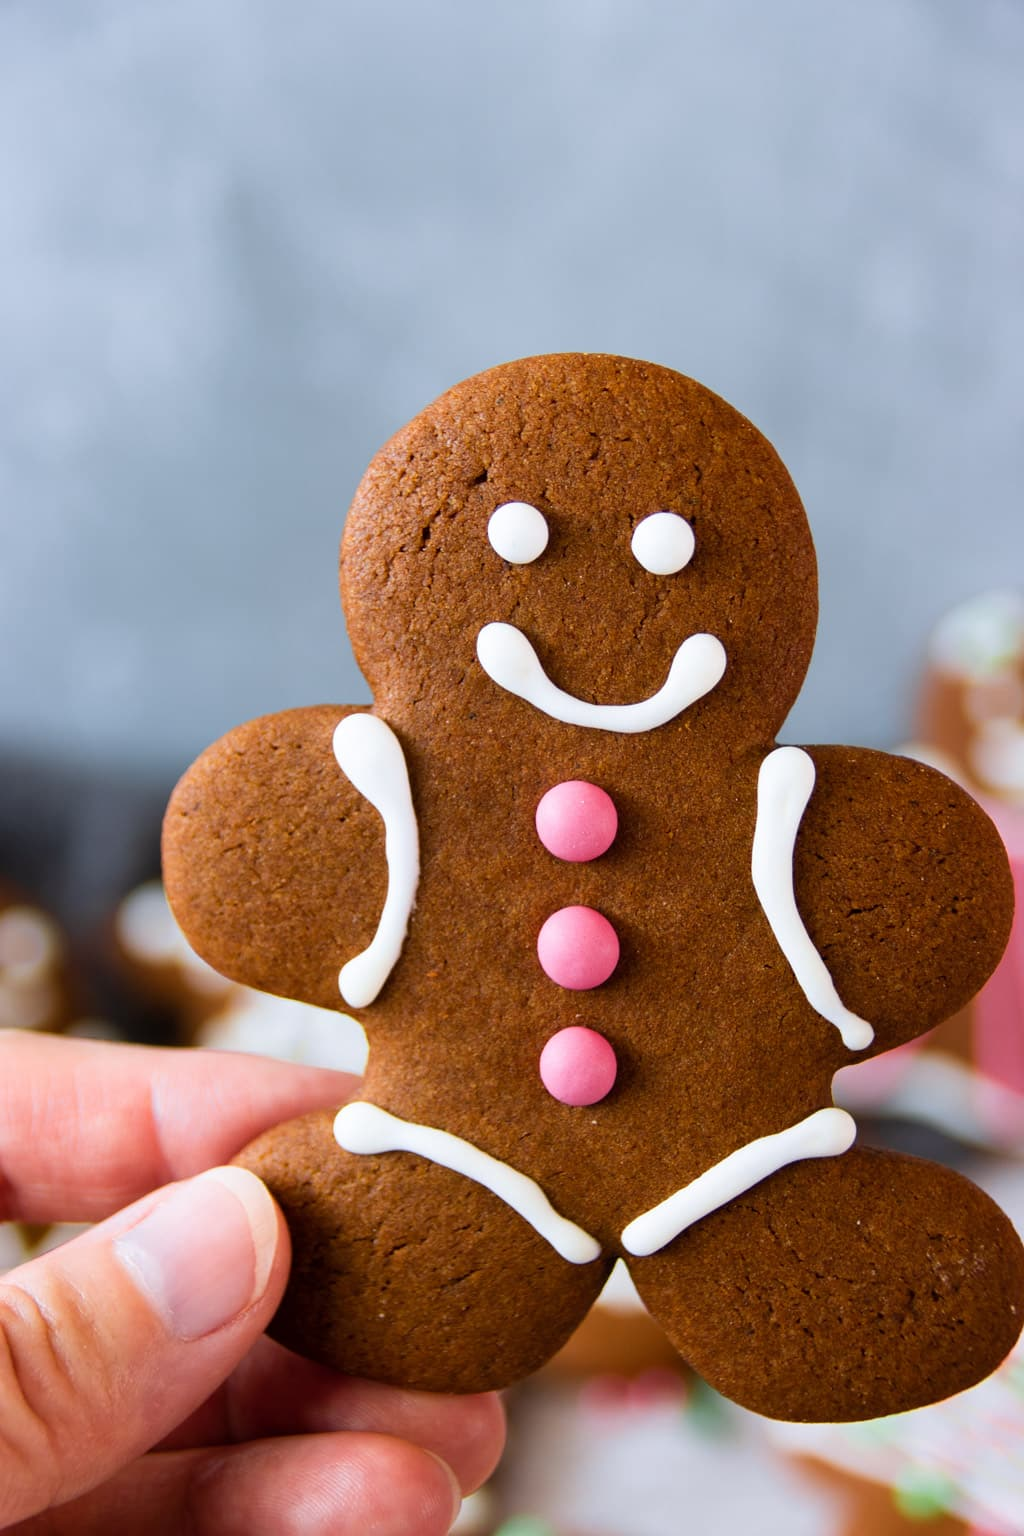 A gingerbread man cookie in focus